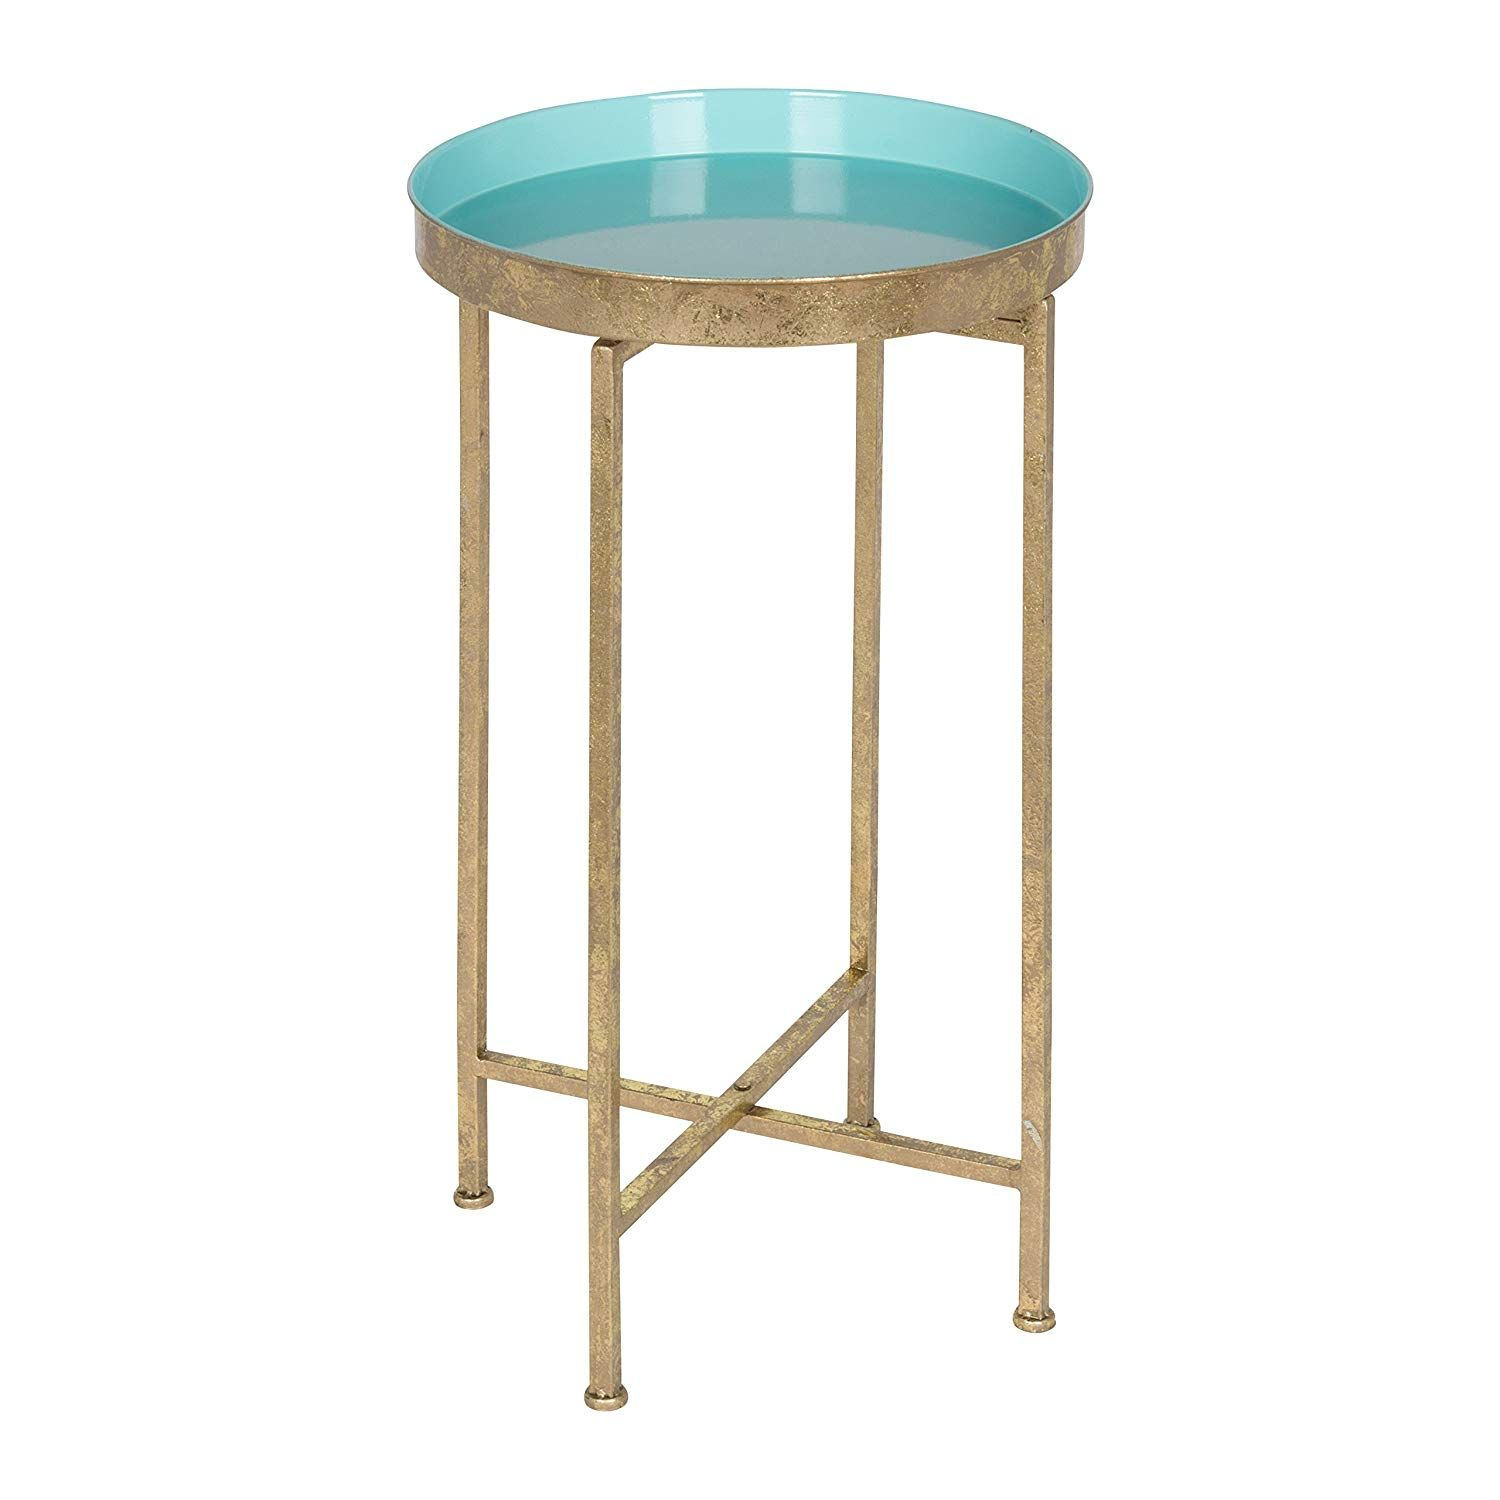 kate and laurel celia round metal foldable tray accent table black gold home kitchen outdoor dining with umbrella pier lamps dishes brass lamp door cabinet counter coupon code